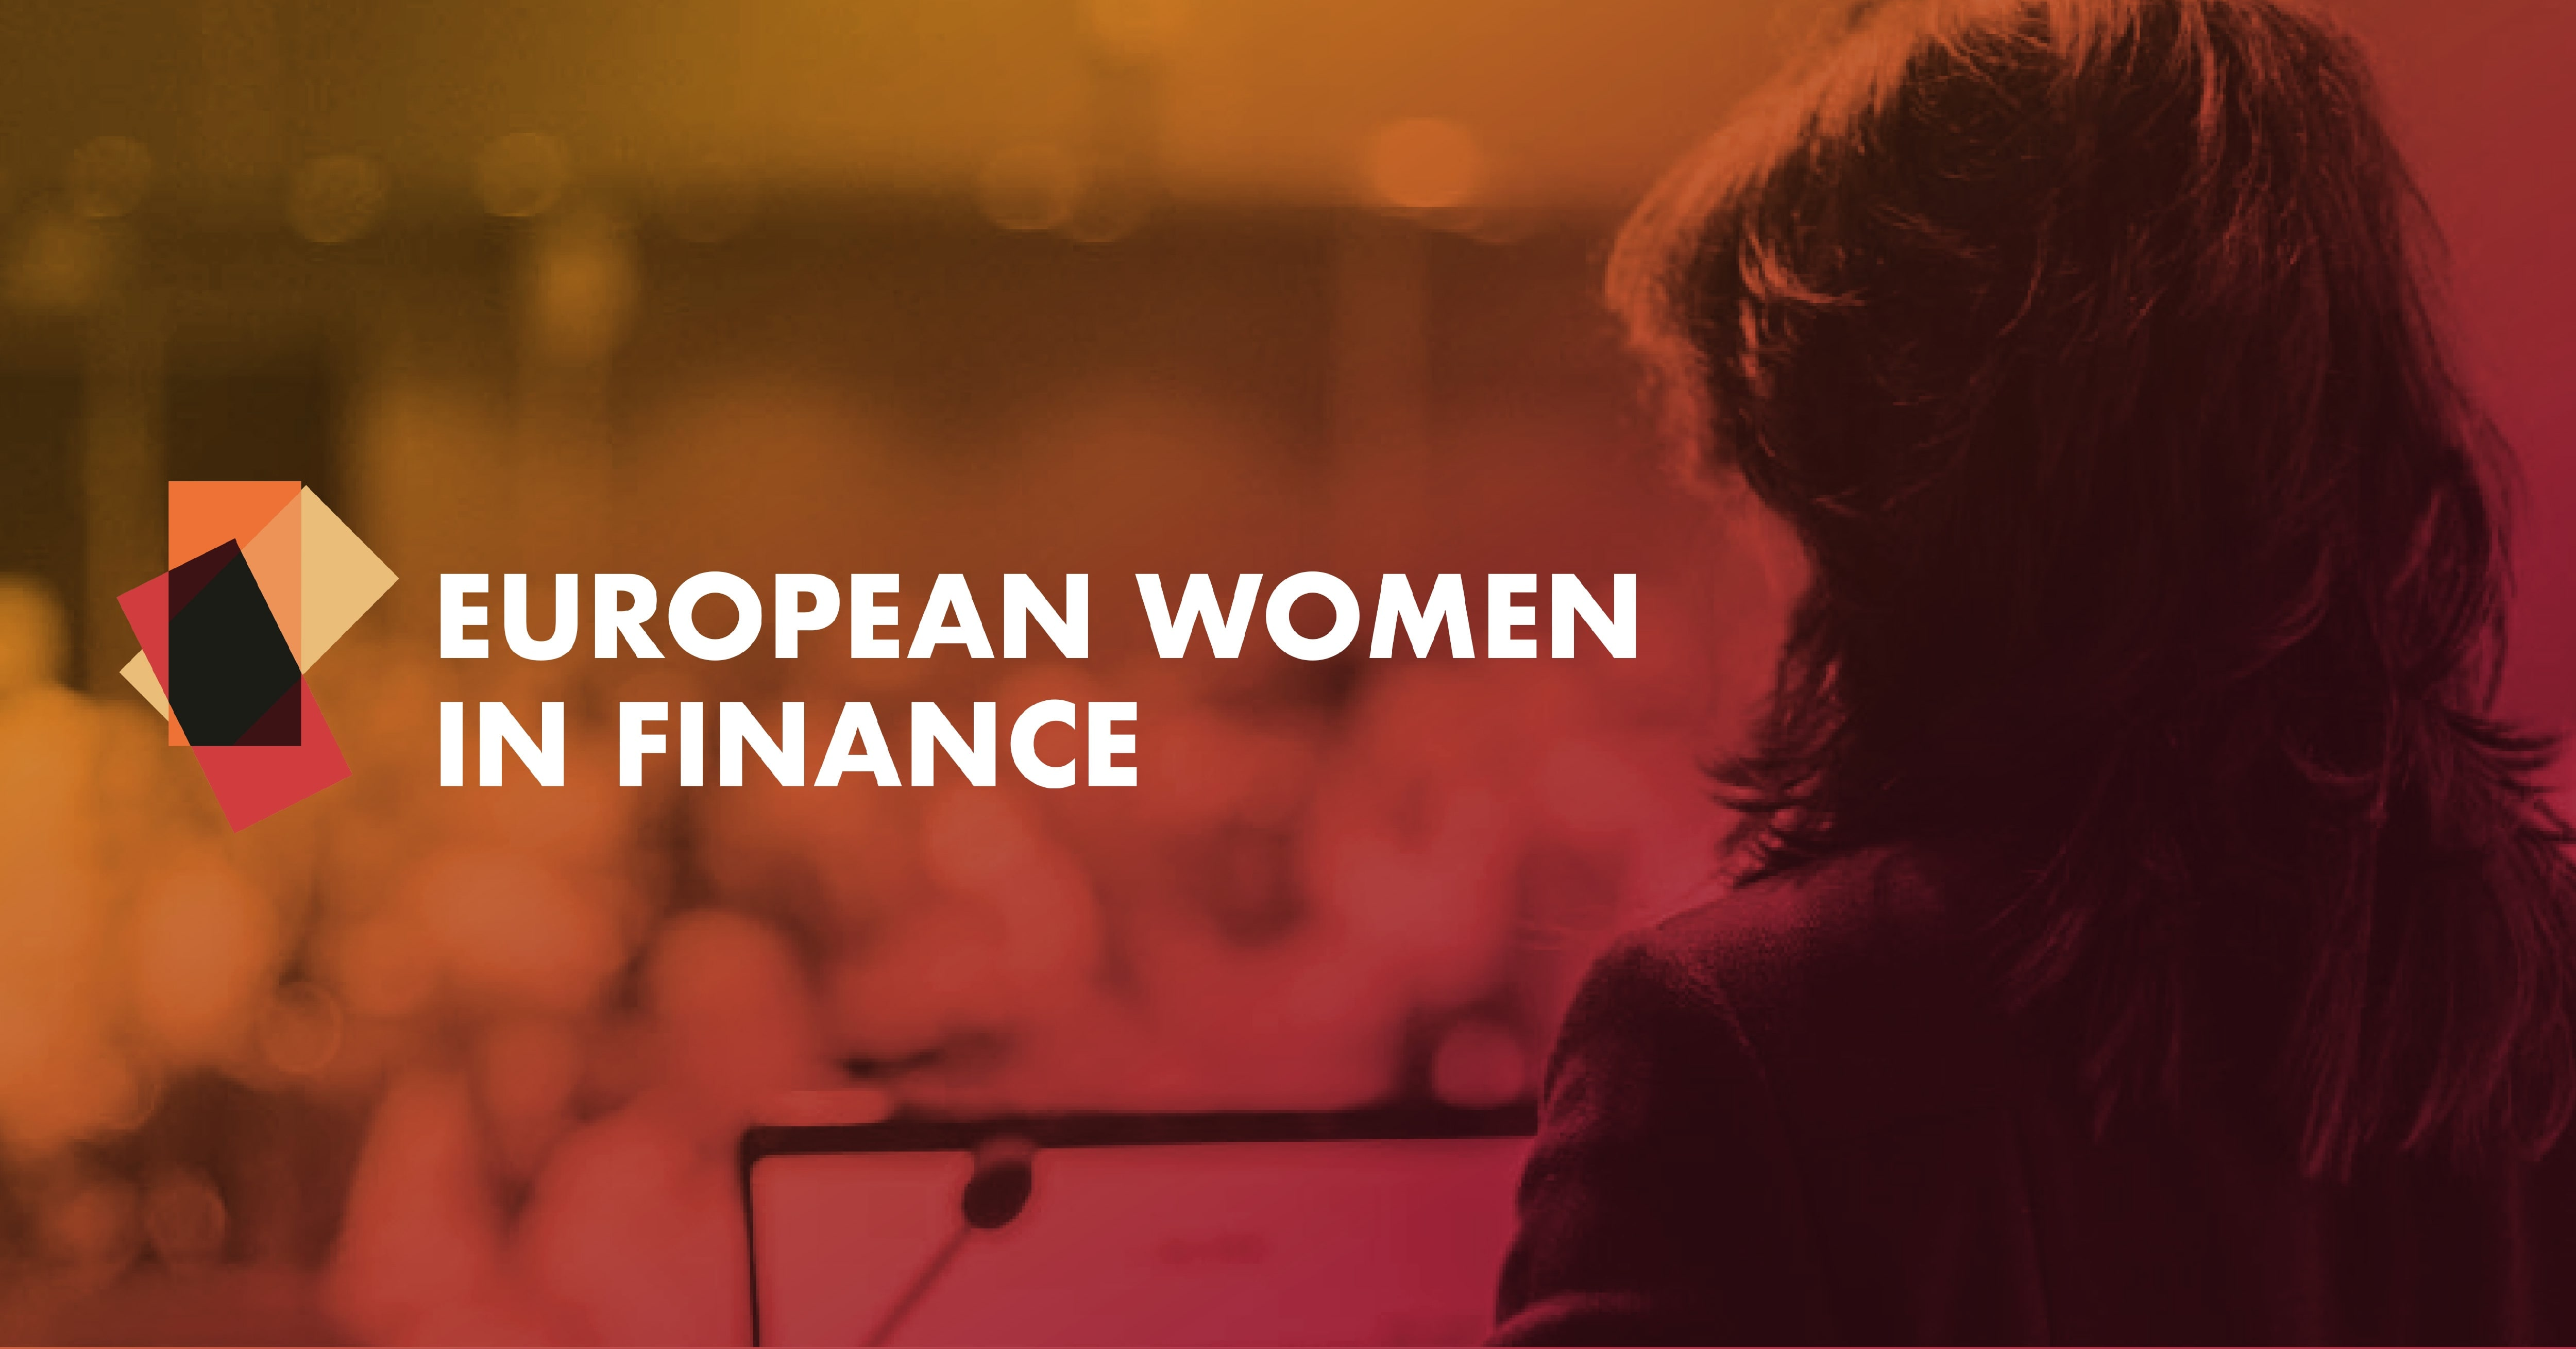 European Women in Finance - A Note From the Producer